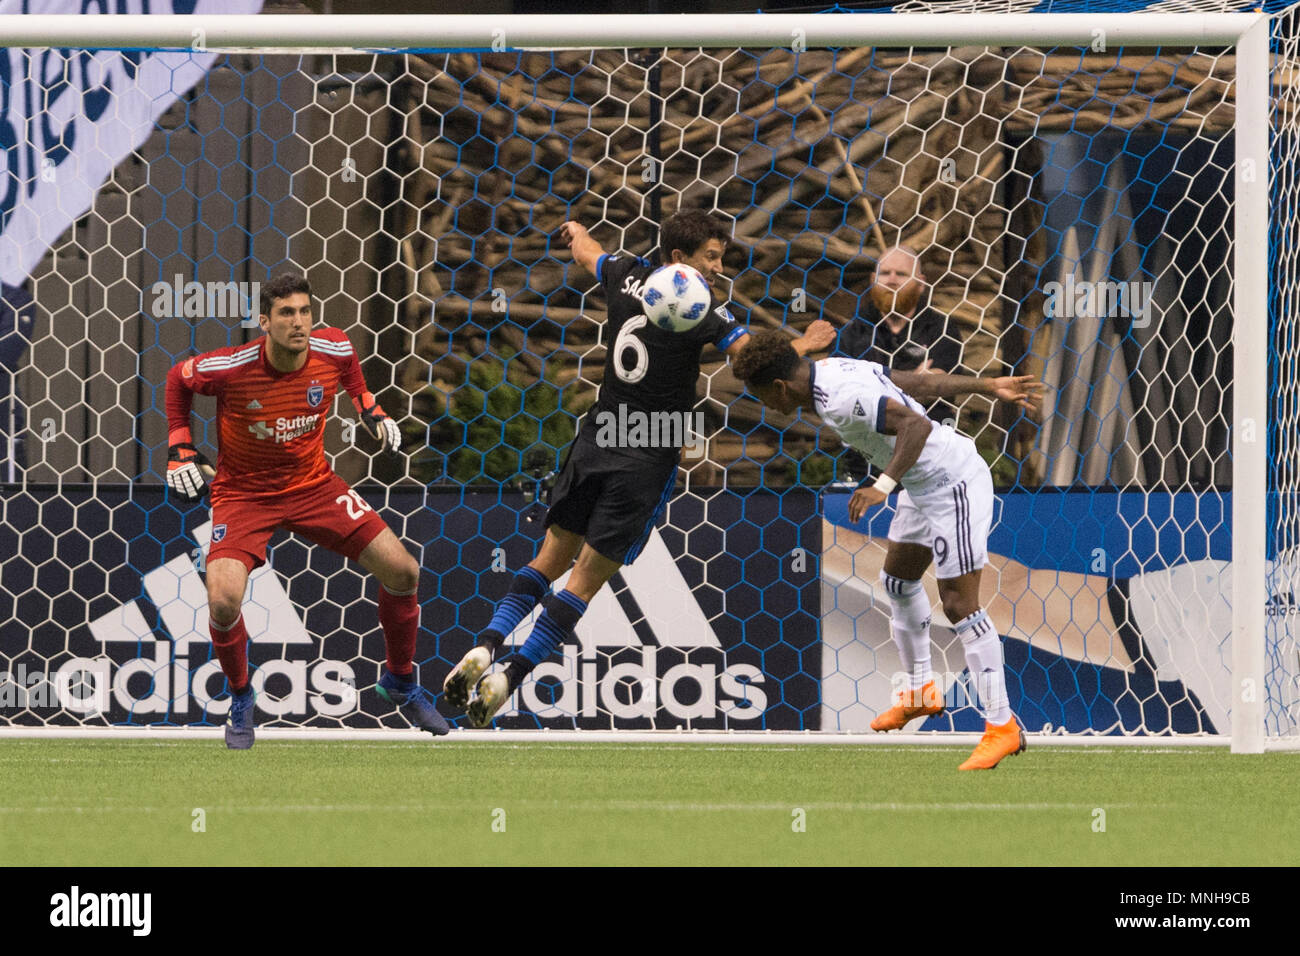 Vancouver, Canada. 16 May 2018. Yordi Reyna (29) of Vancouver Whitecaps heads the ball in net for a goal. Game ends with a 2-2 tie. Vancouver Whitecaps vs San Jose Earthquakes BC Place.  © Gerry Rousseau/Alamy Live News - Stock Image